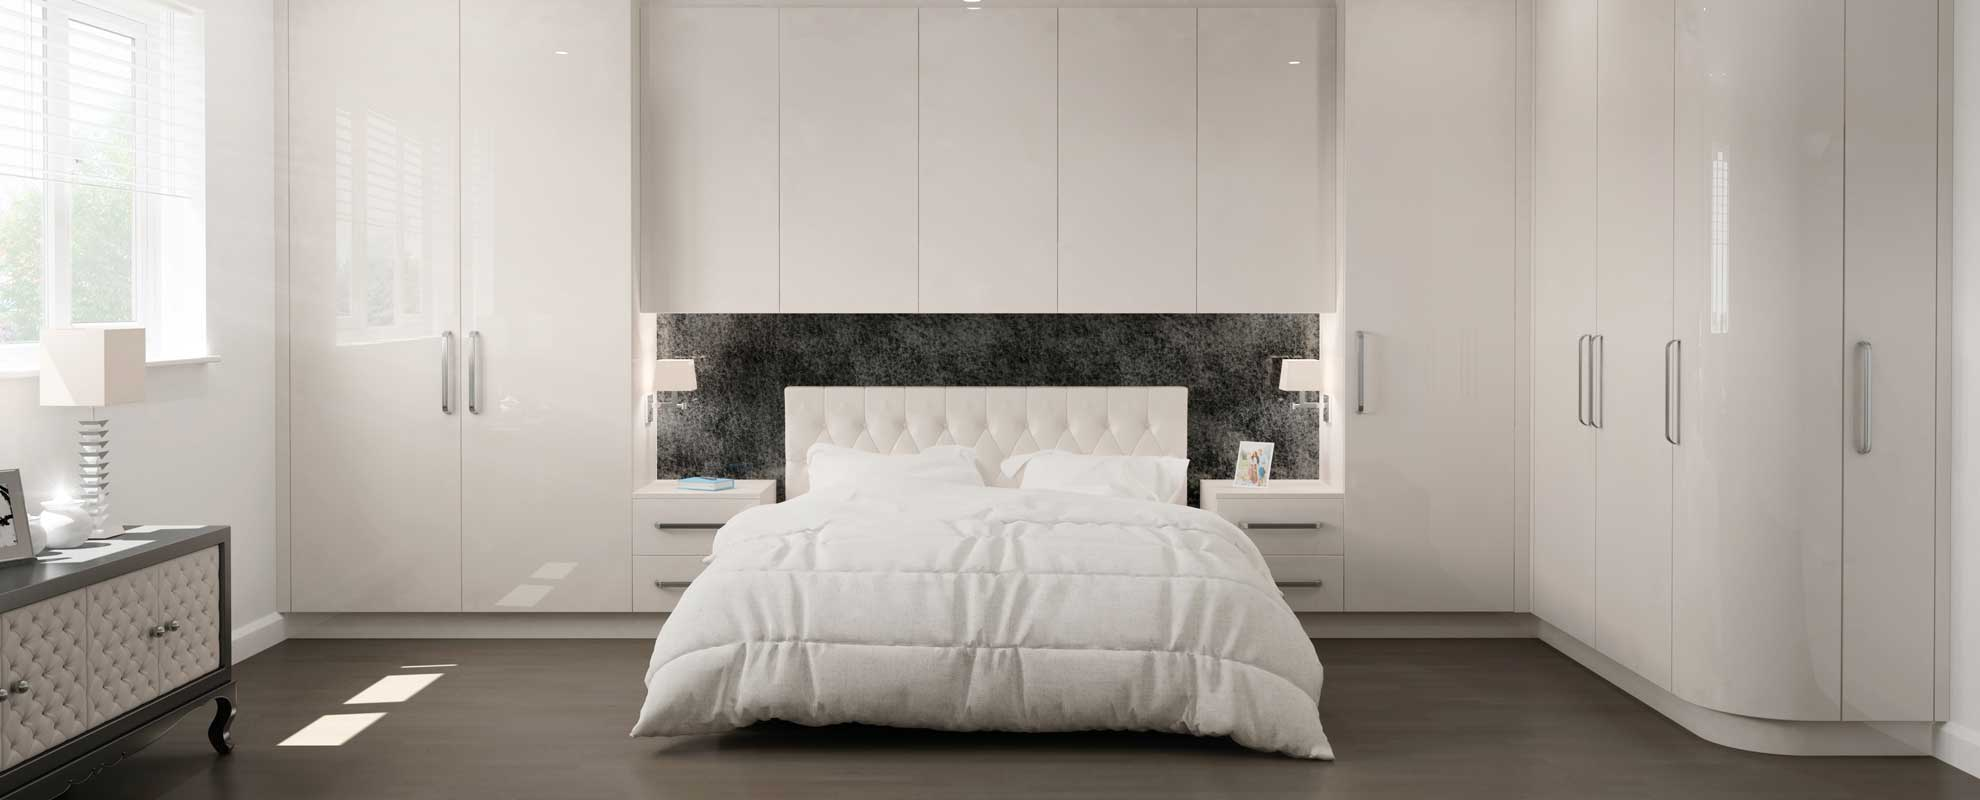 Glacier bedroom in High Gloss Cashmere